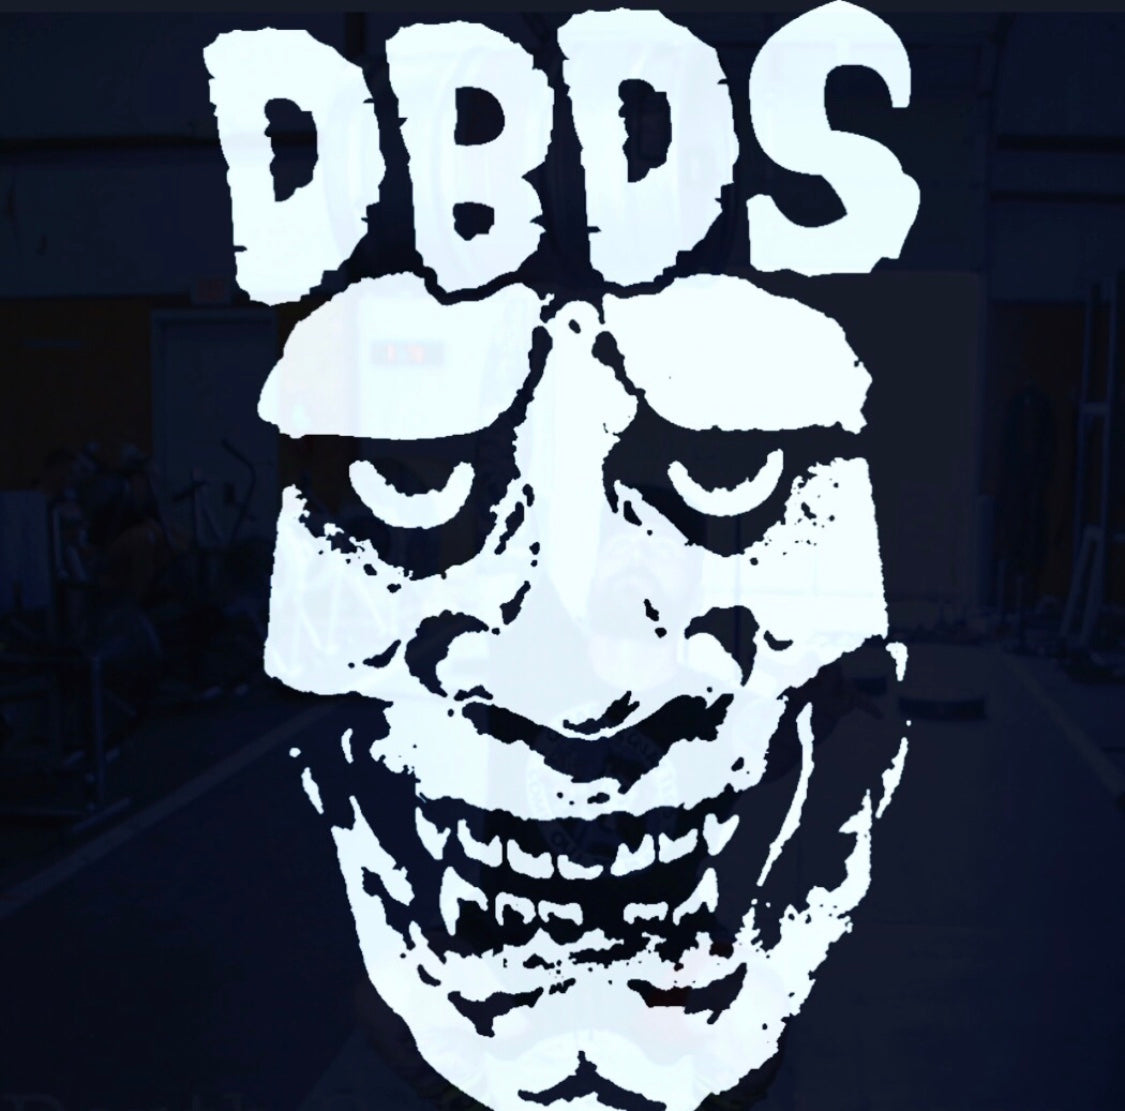 (((Depth, Depth My Darling DBDS tee